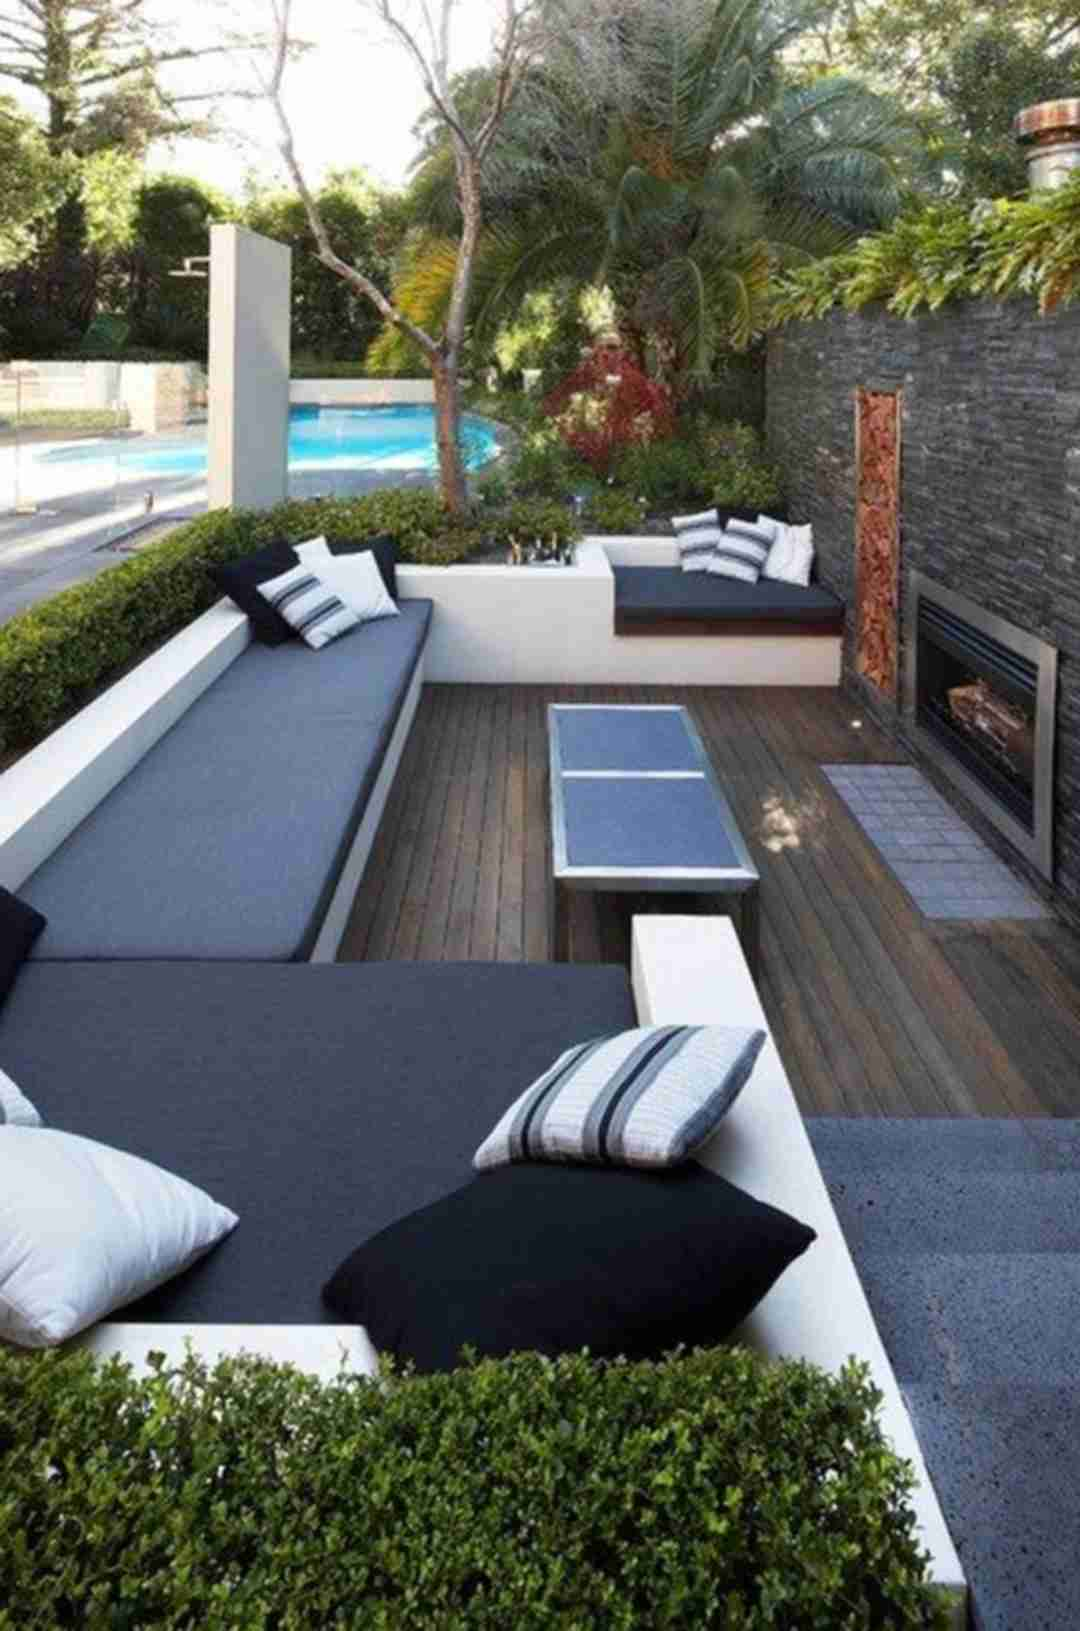 Dreamy relaxation with style - Ecotek (4)